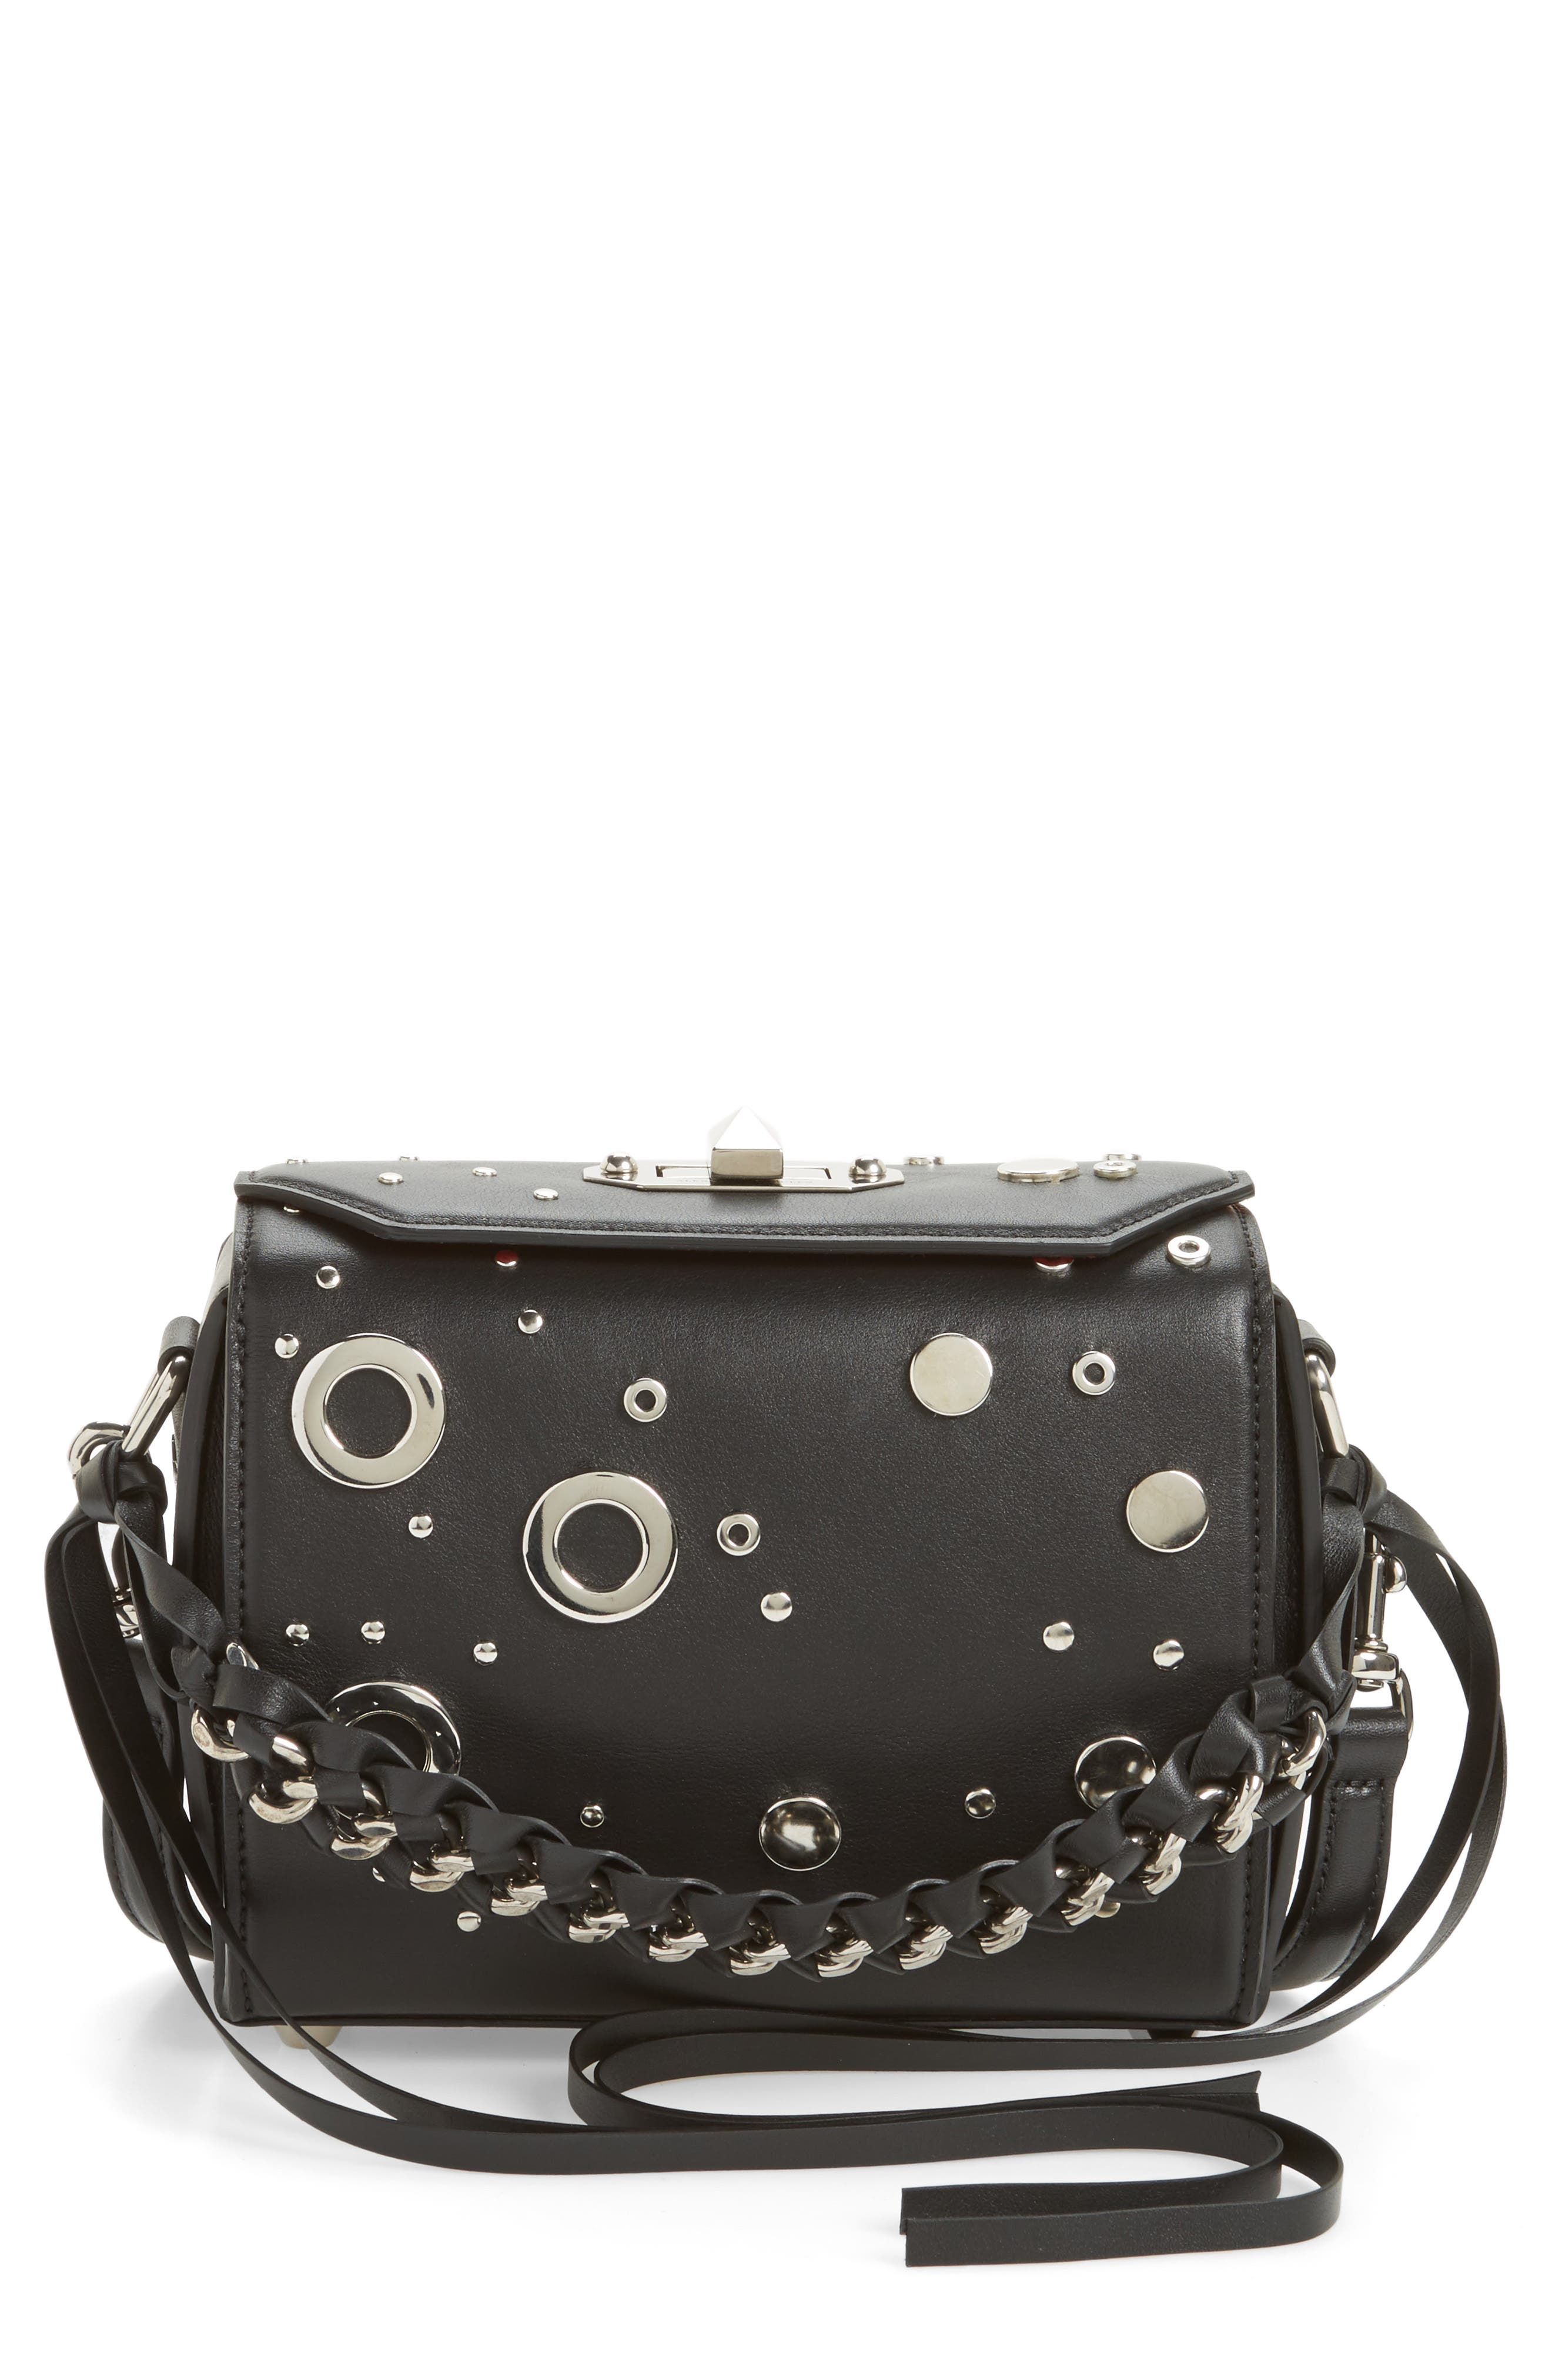 Alexander McQueen Grommet & Stud Calfskin Leather Box Bag